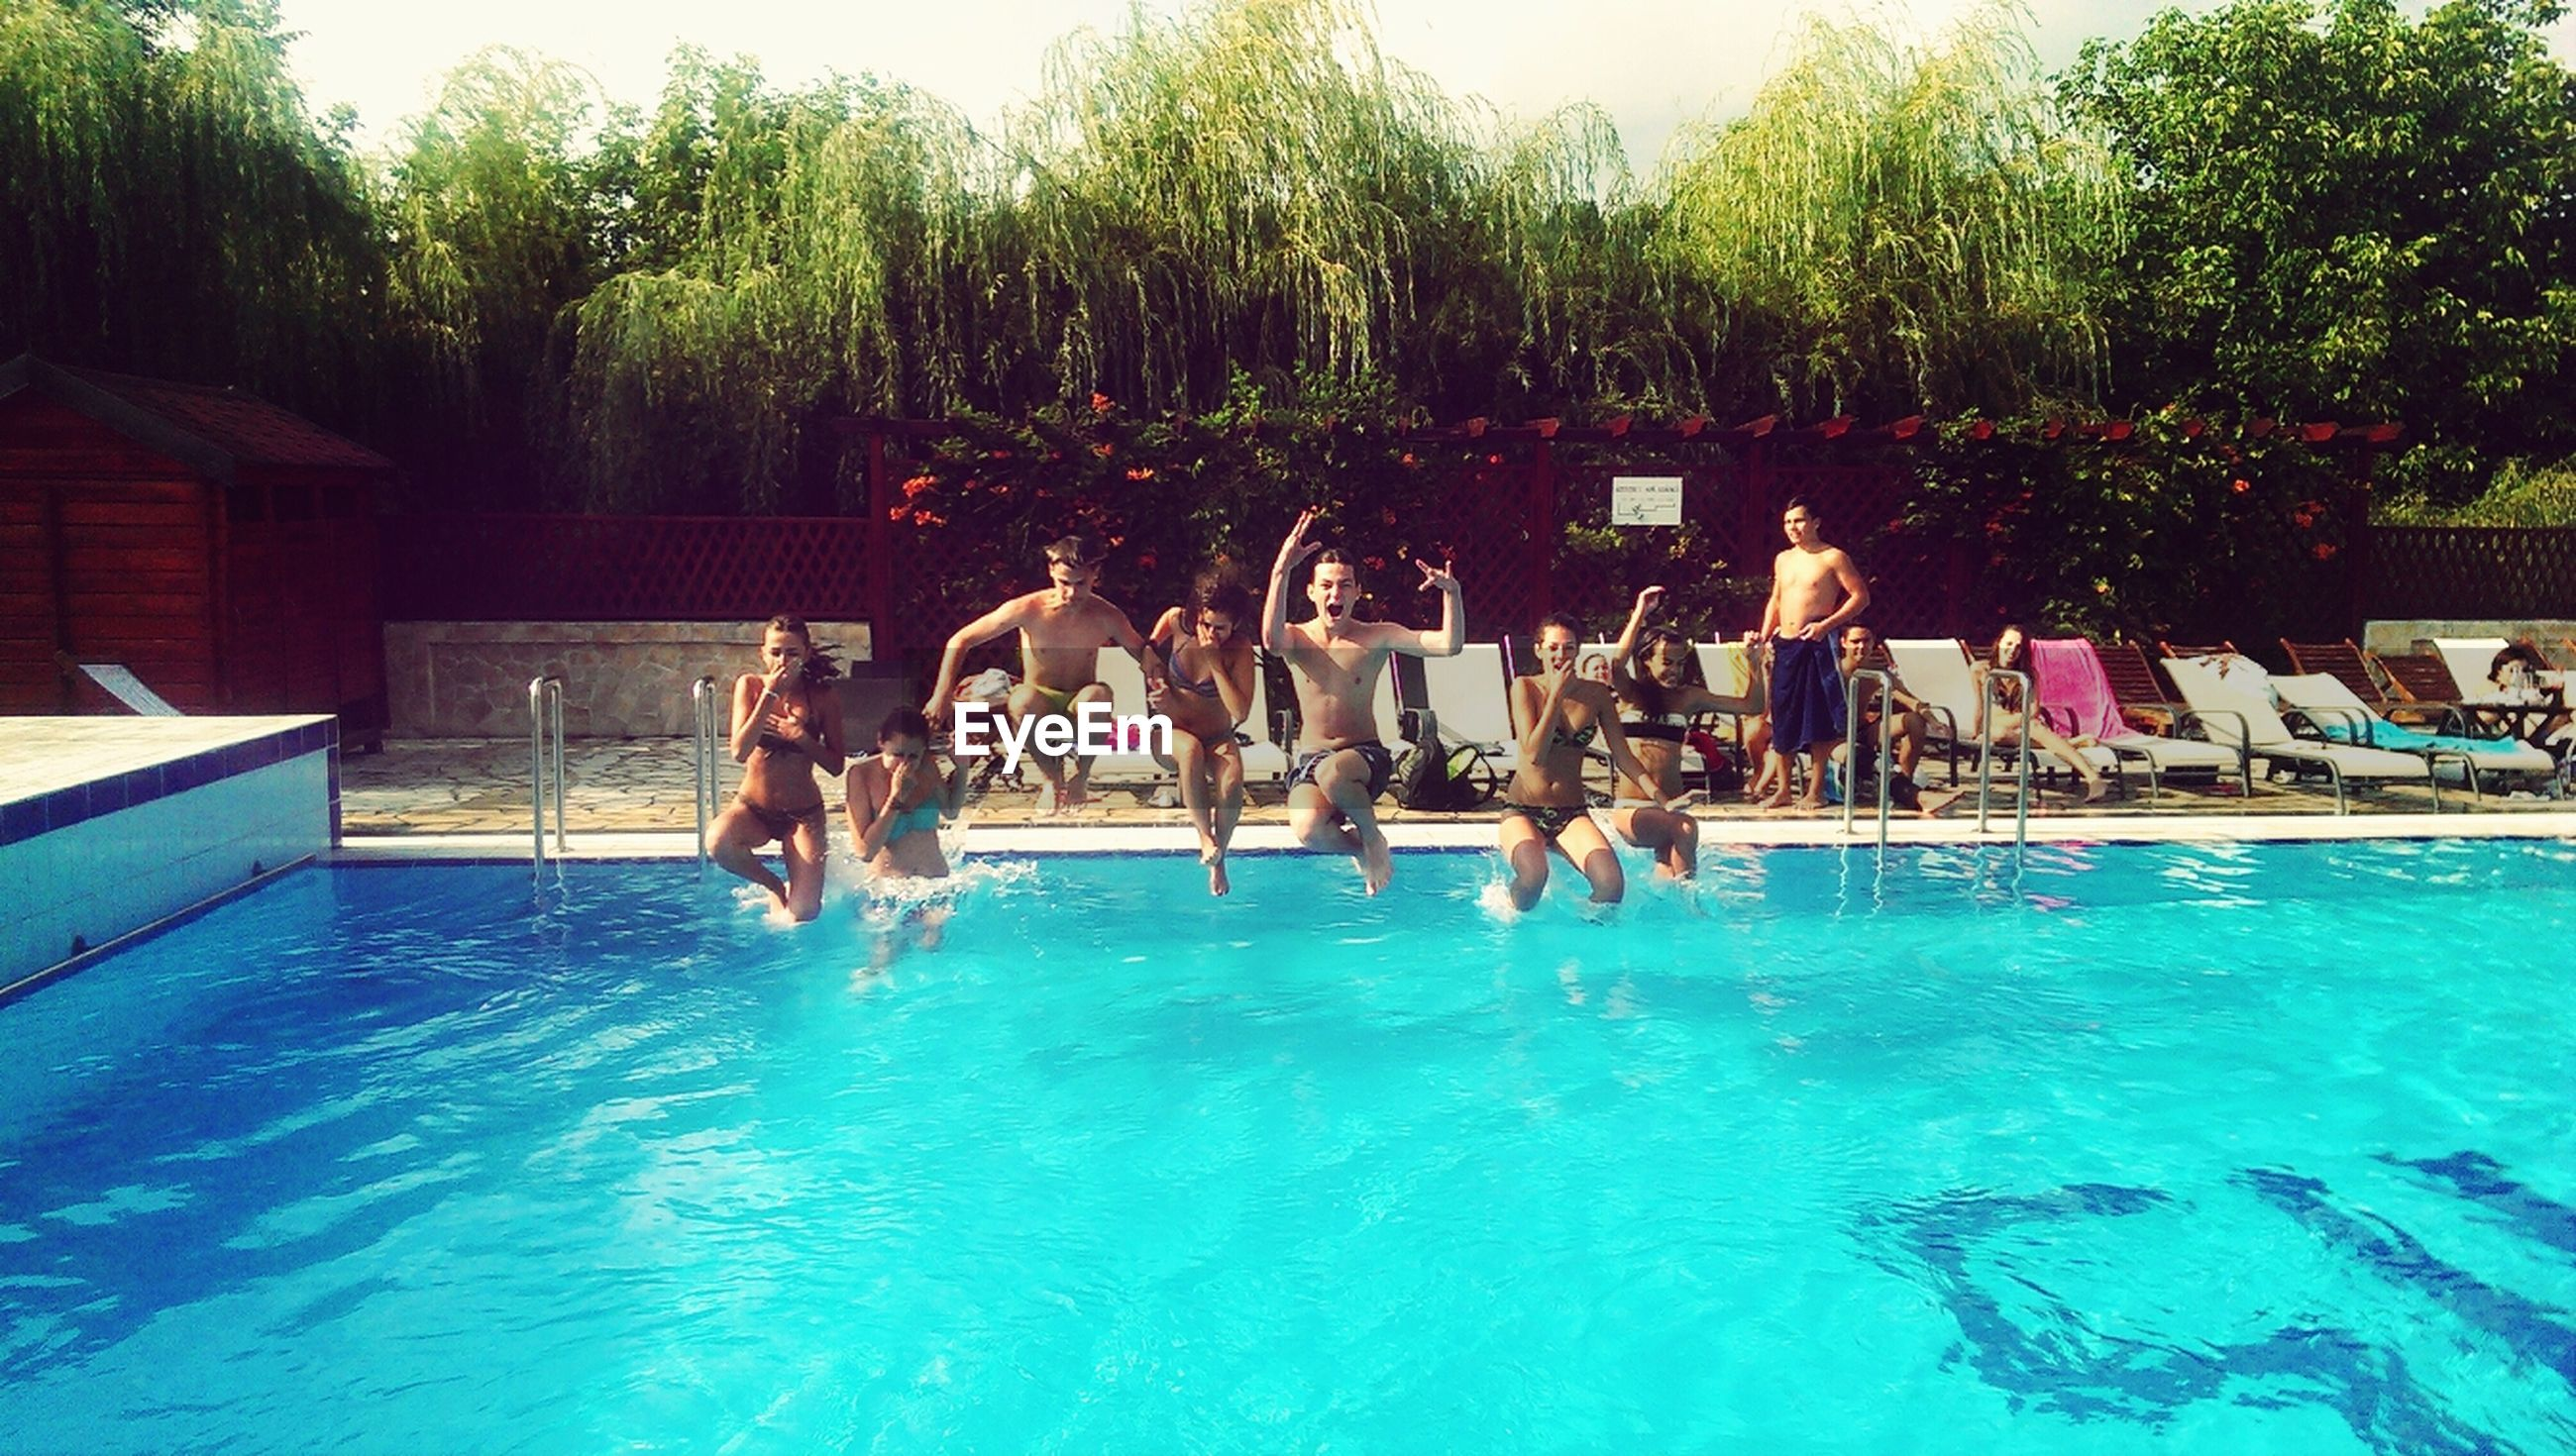 water, swimming pool, tree, lifestyles, leisure activity, vacations, enjoyment, waterfront, blue, large group of people, turquoise colored, sea, men, person, summer, fun, nature, tourist resort, built structure